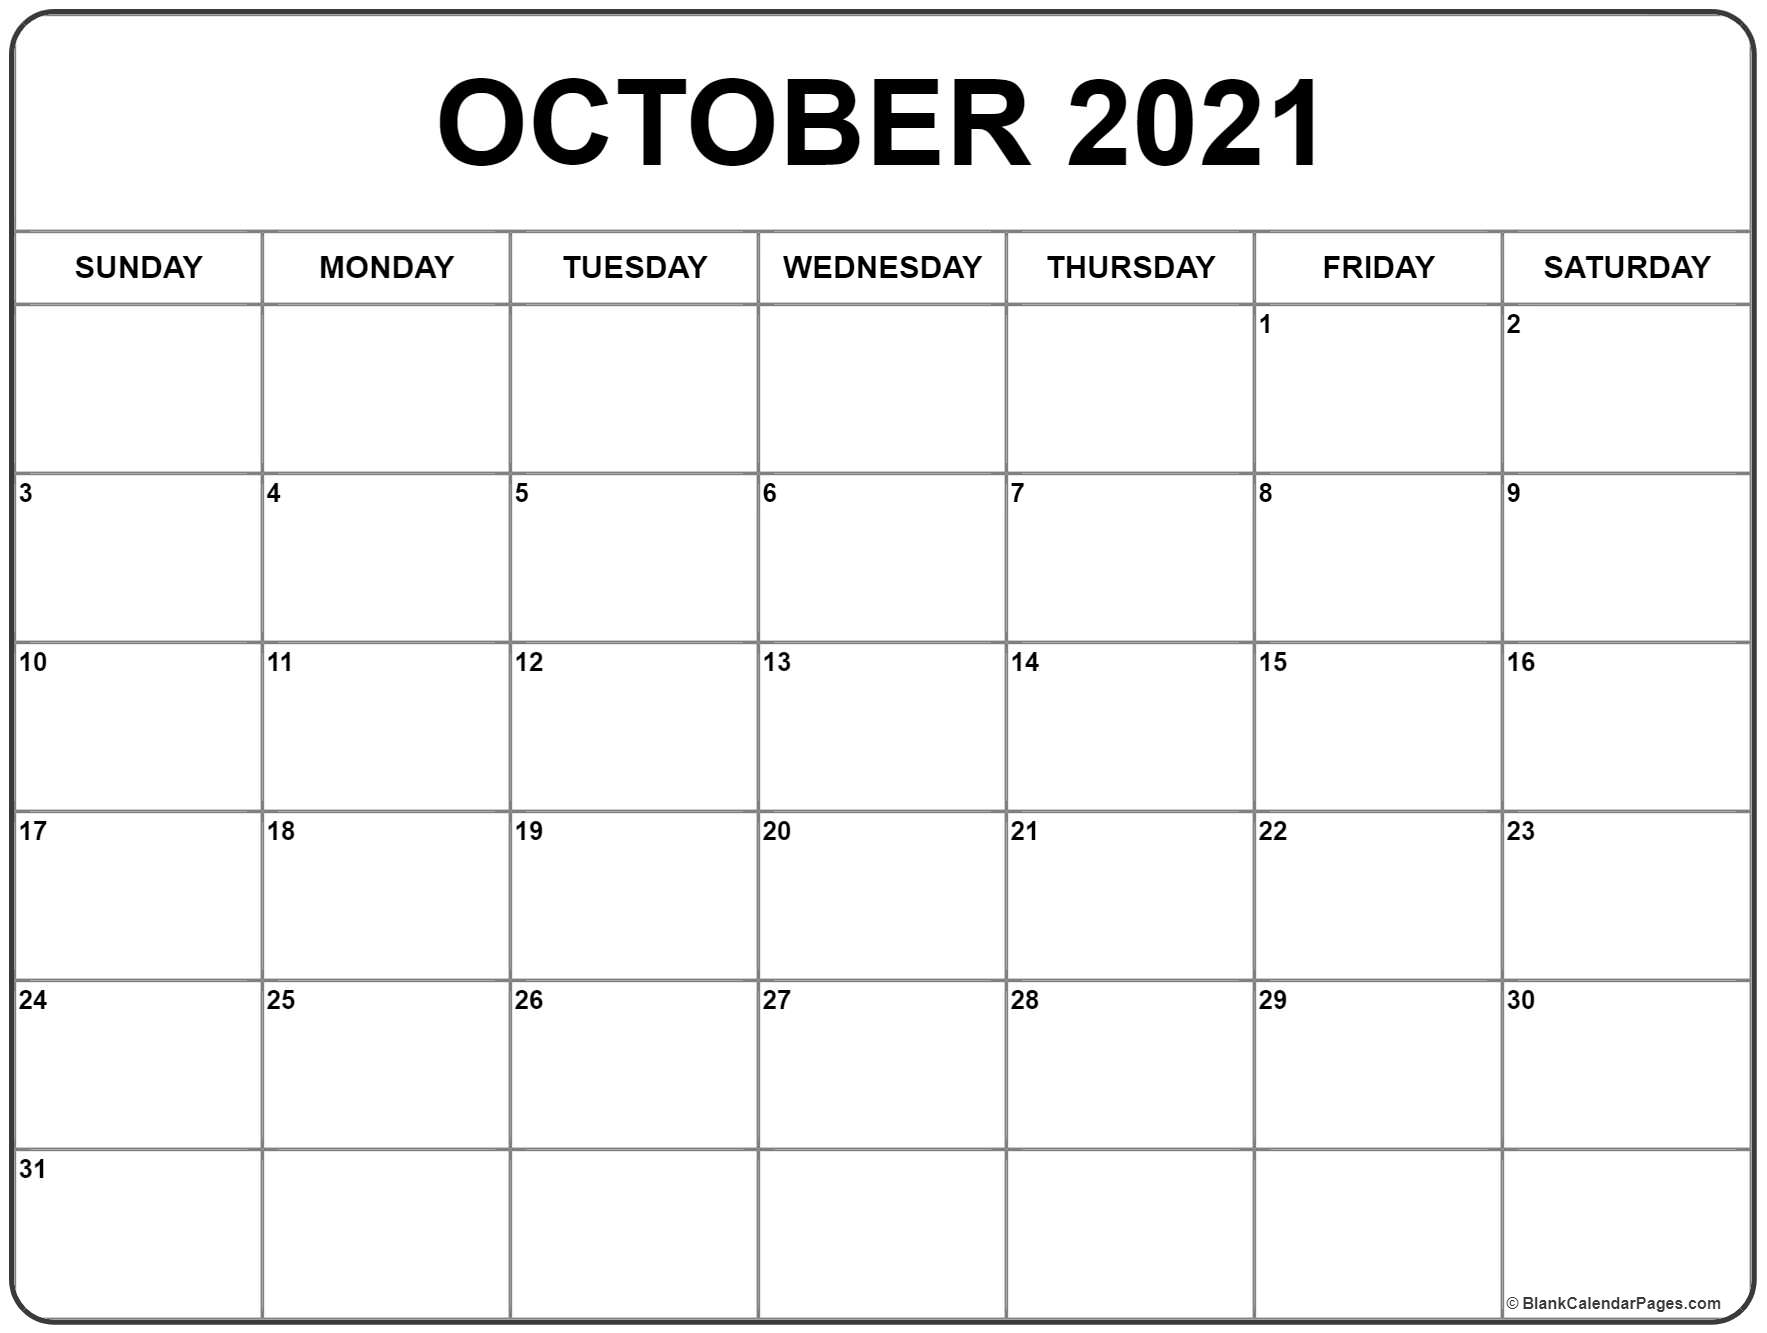 2020 Oct Calendar October 2020 calendar | free printable monthly calendars